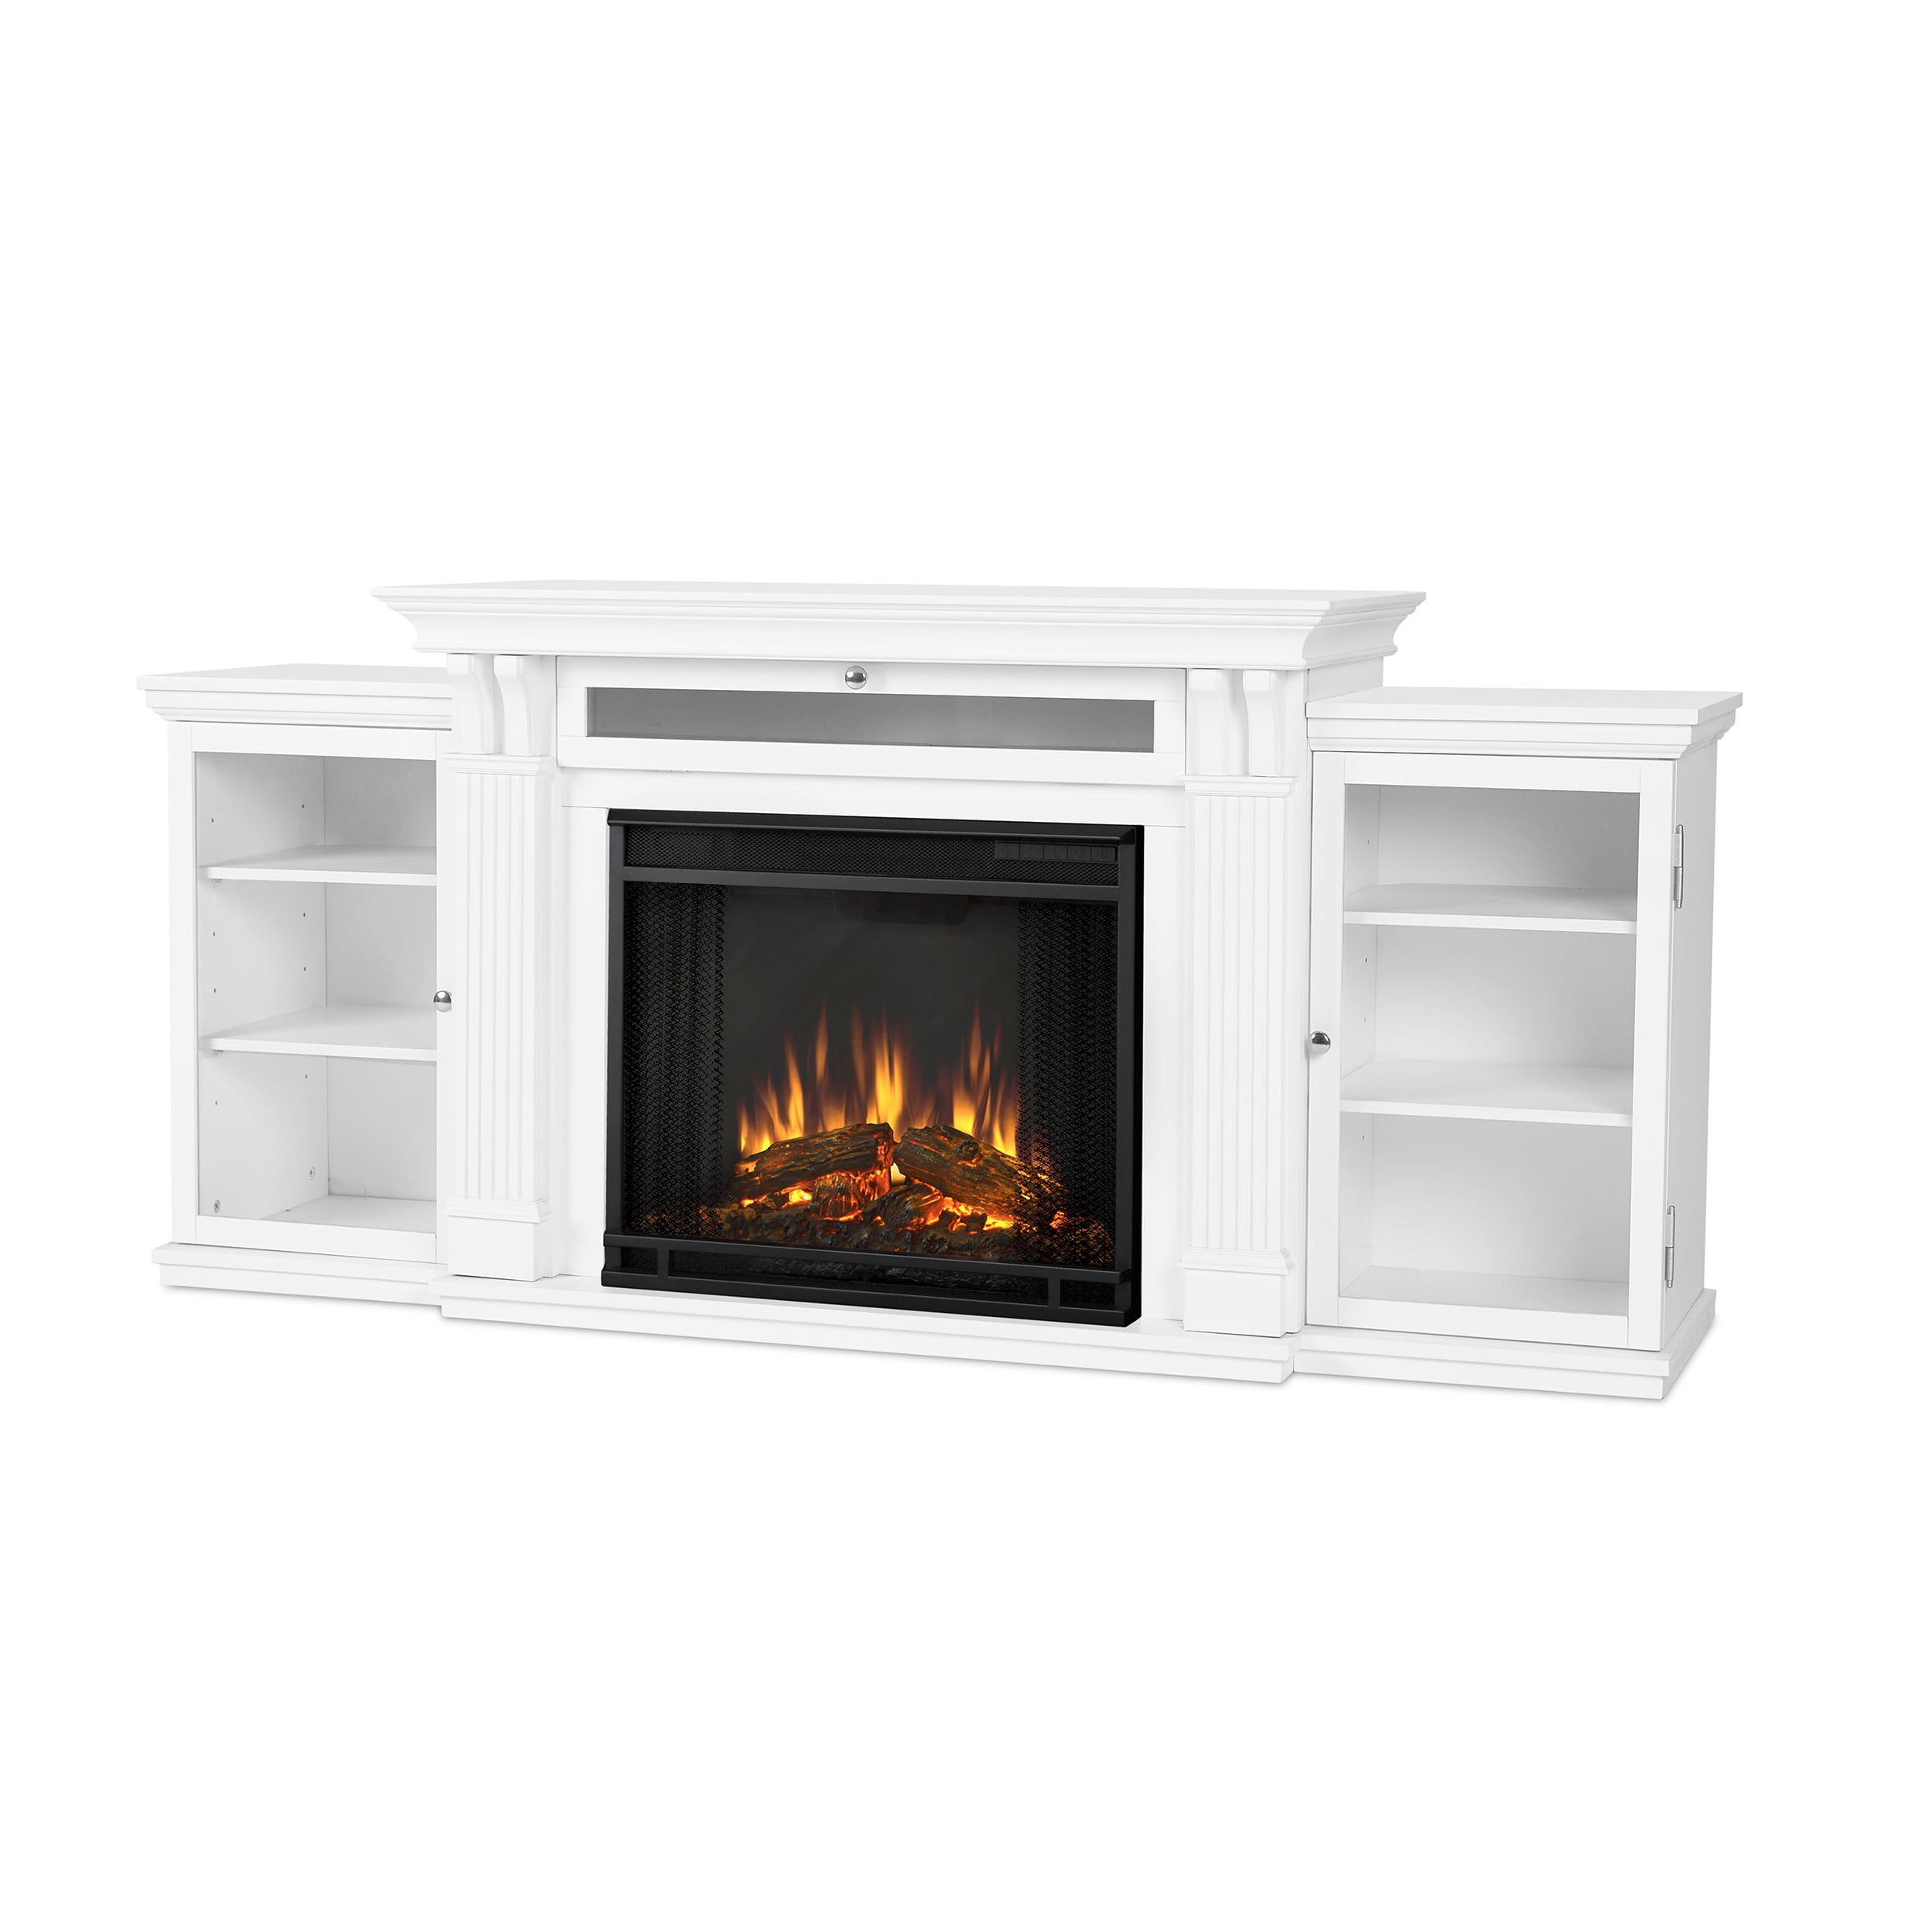 Real Flame - Calie TV/media Stand Fireplace - White